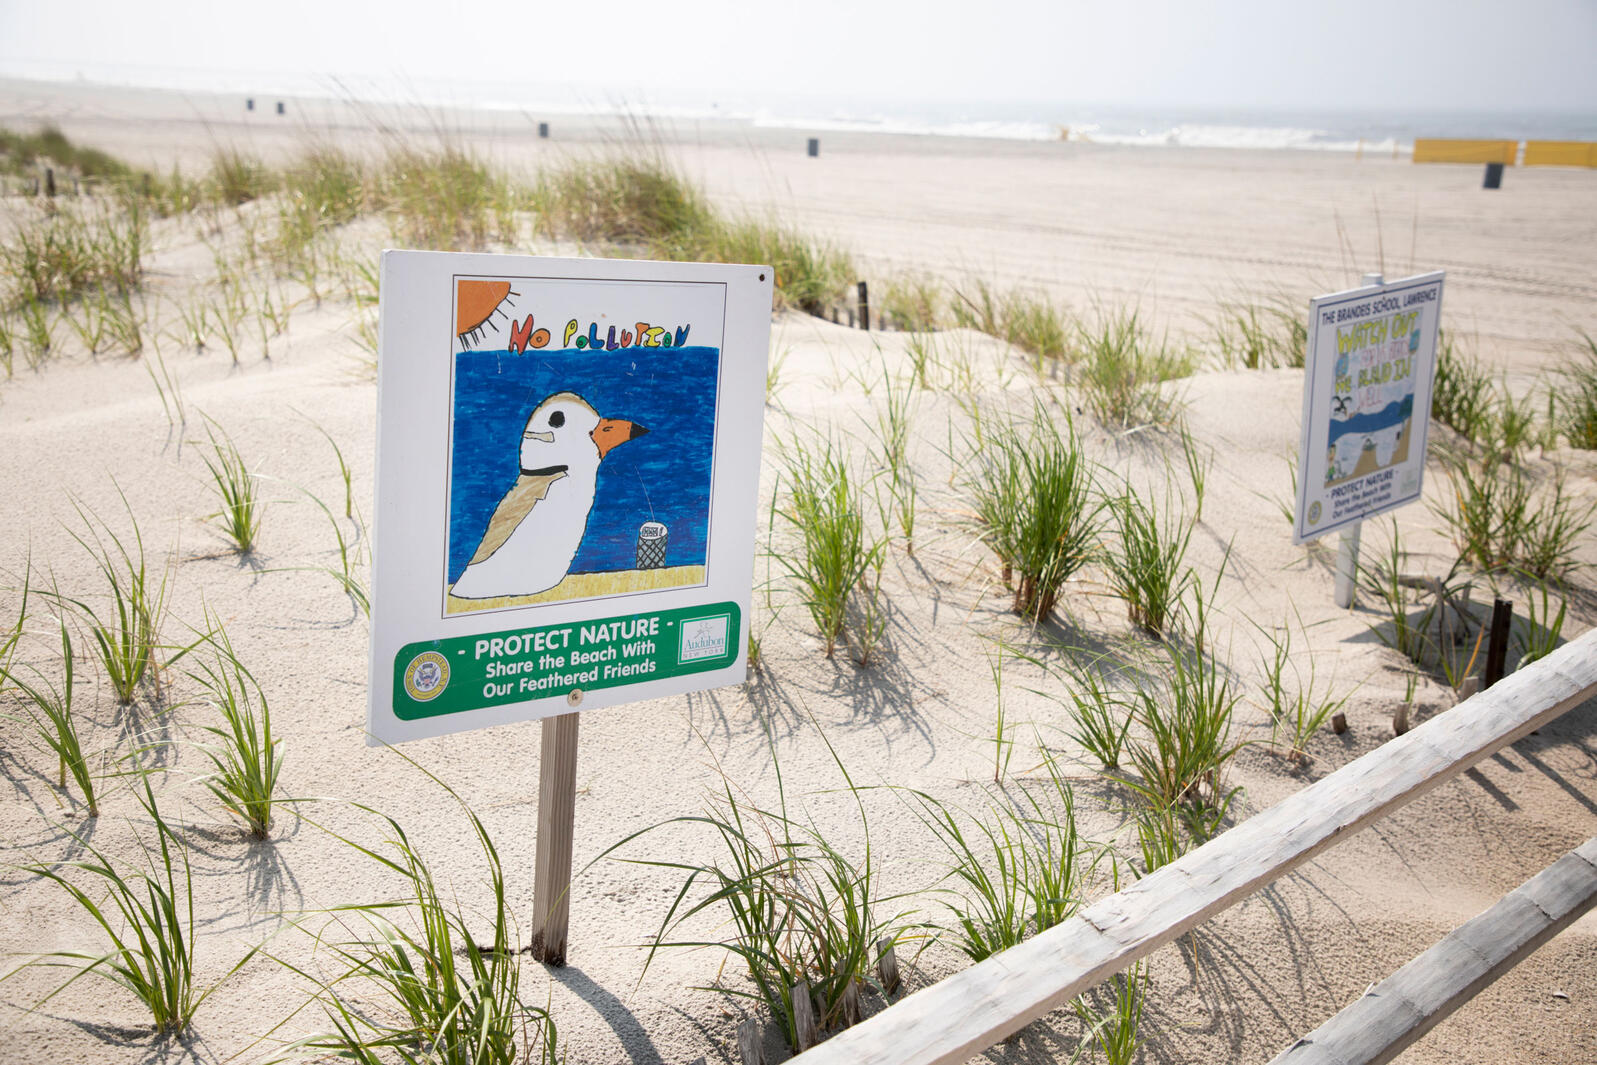 Bird-friendly signs along the beach at Point Lookout Town Park in Point Lookout, NY. Luke Franke/Audubon